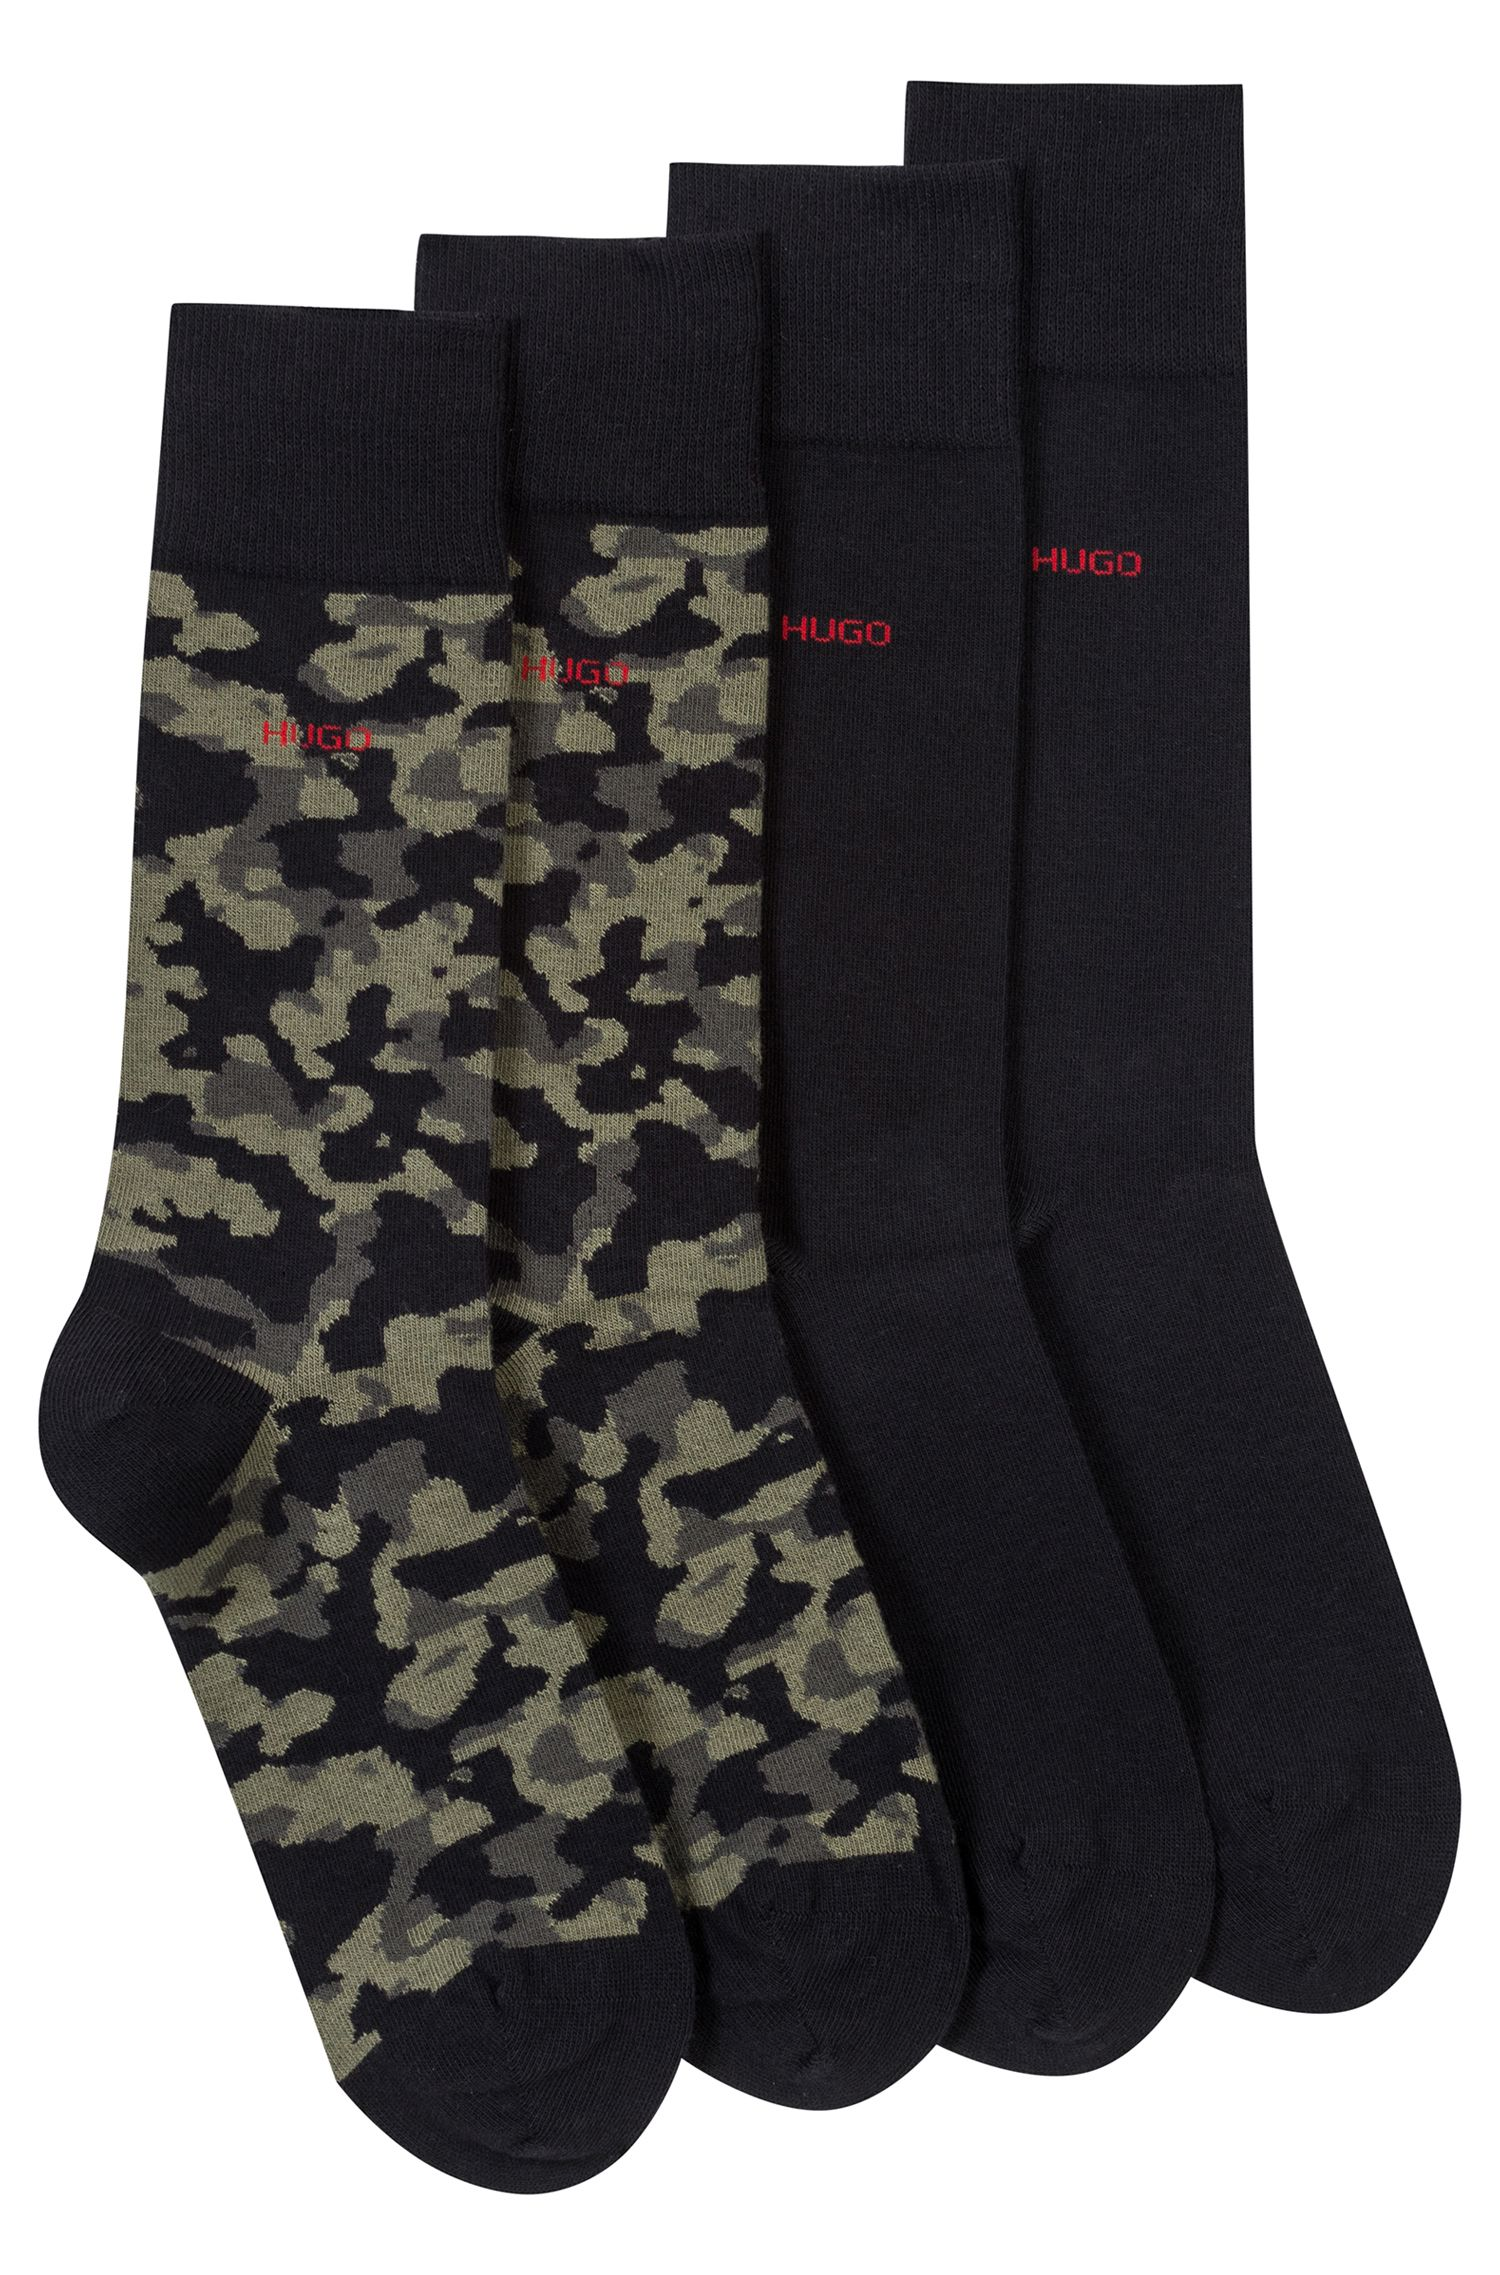 Two-pack of cotton-blend plain and camouflage socks, Black